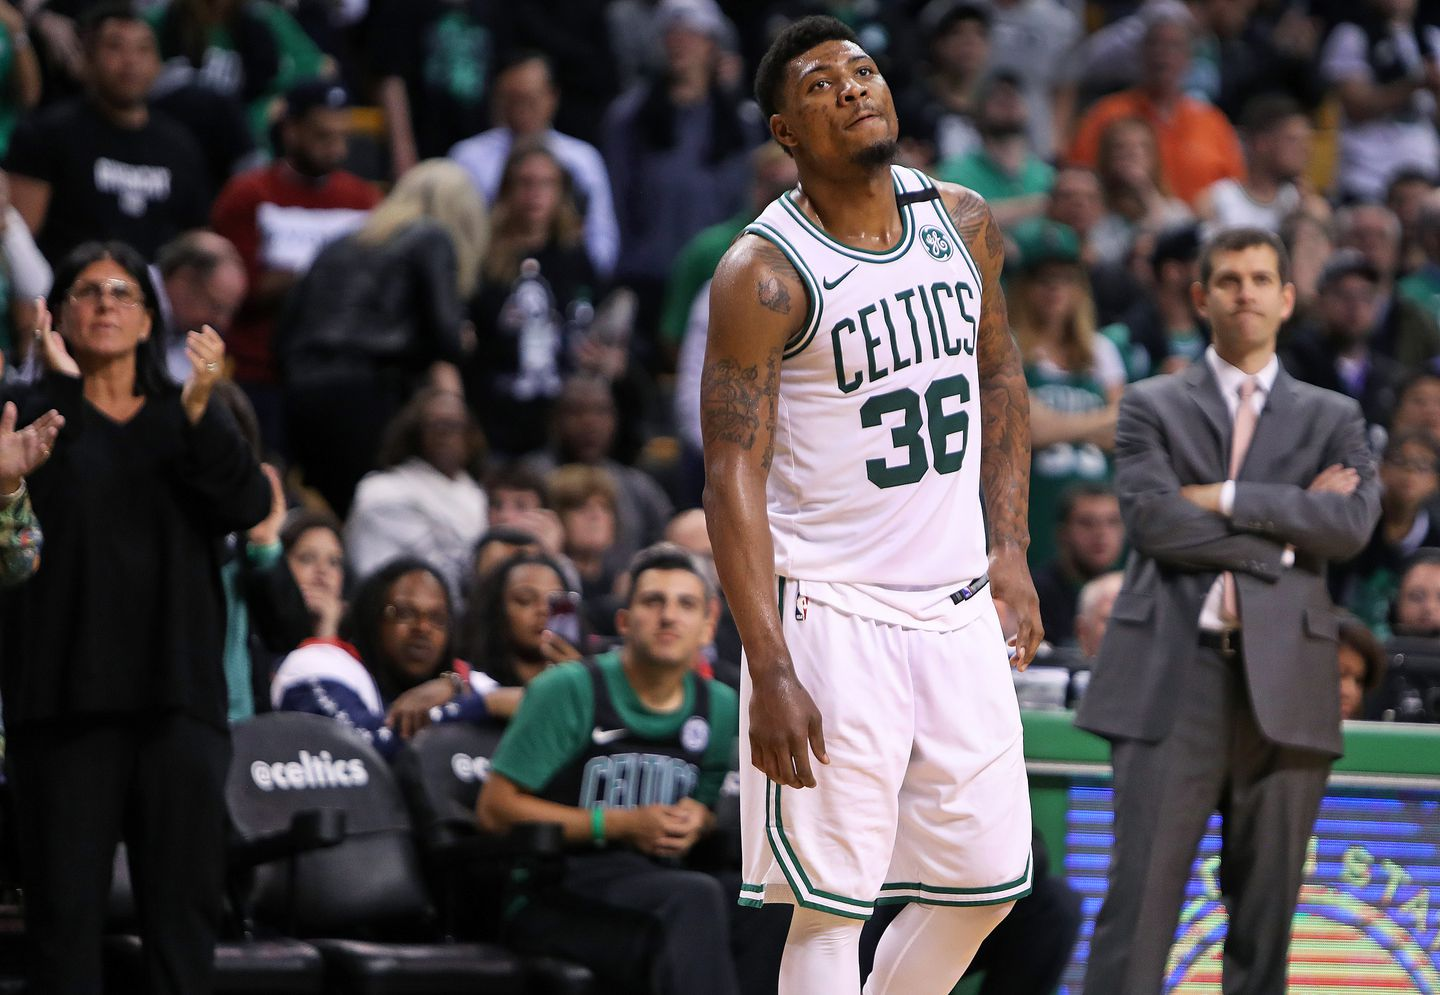 ab83e57b120e It s time for the Celtics and Marcus Smart to settle their differences